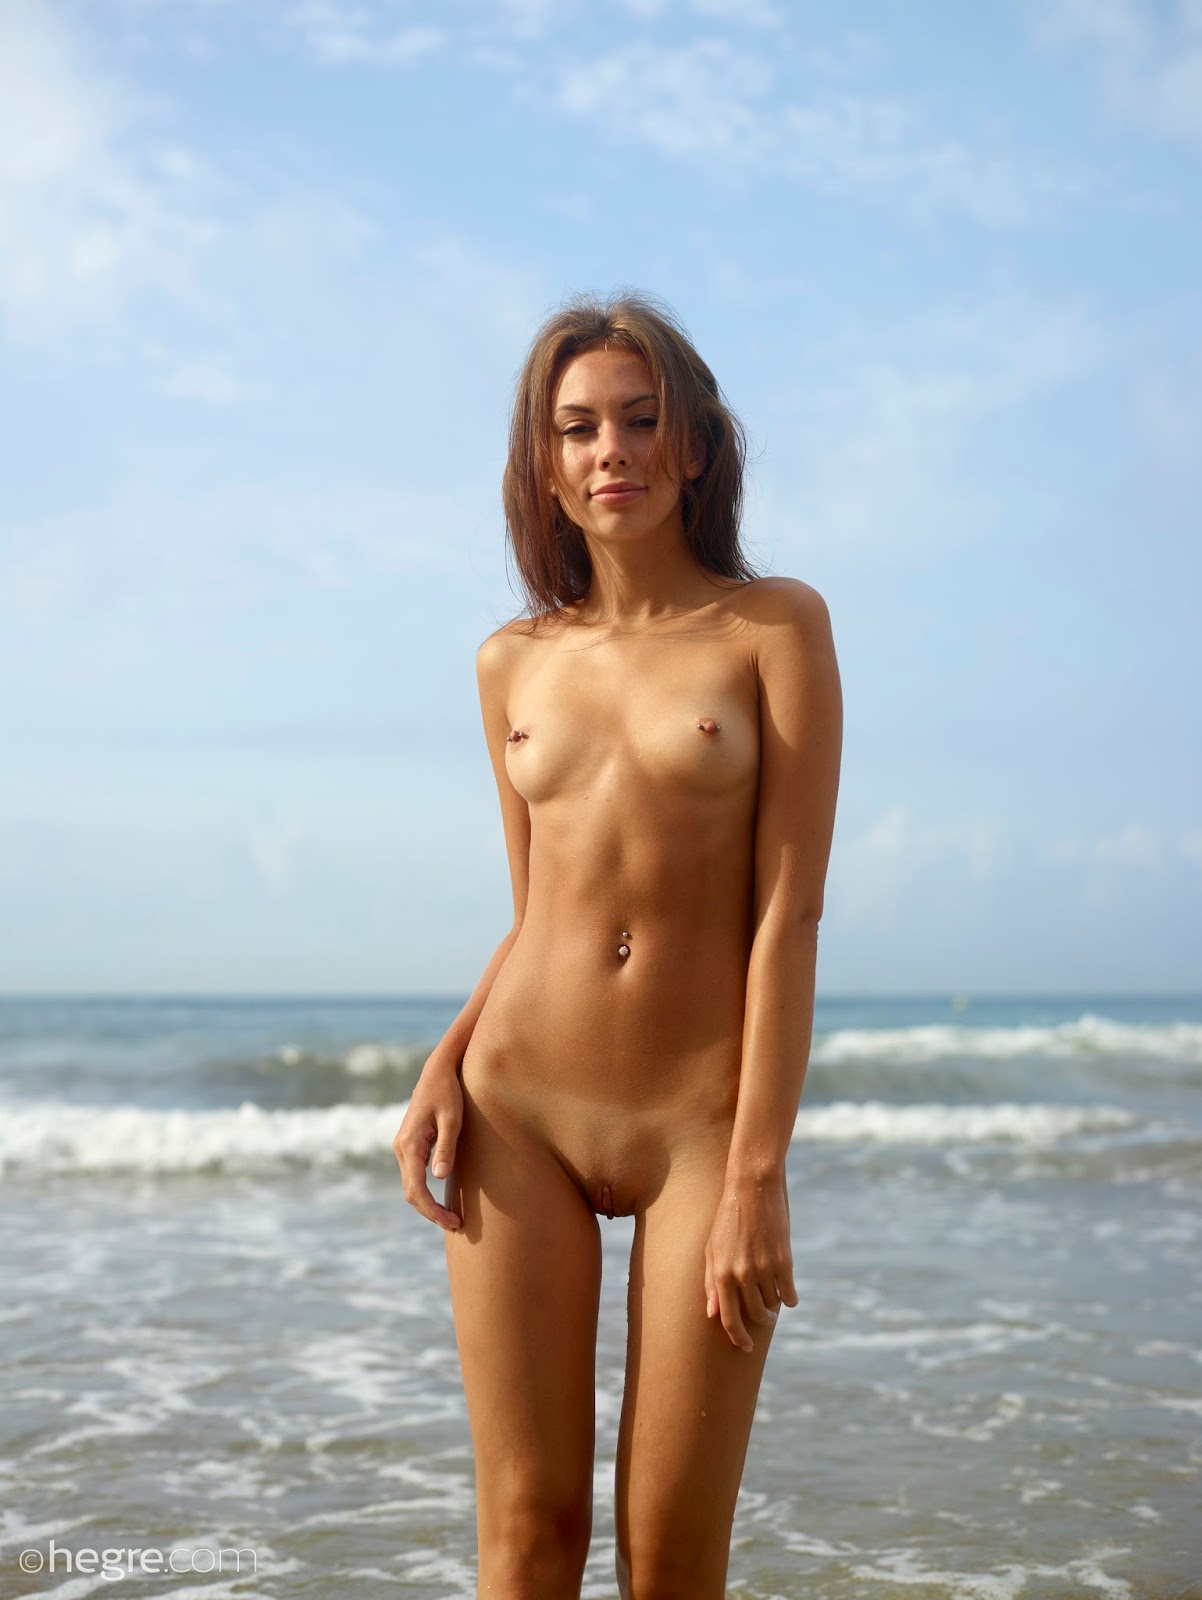 Beach bukkake 2 with 5 guys amp nataliek outdoors in public 10